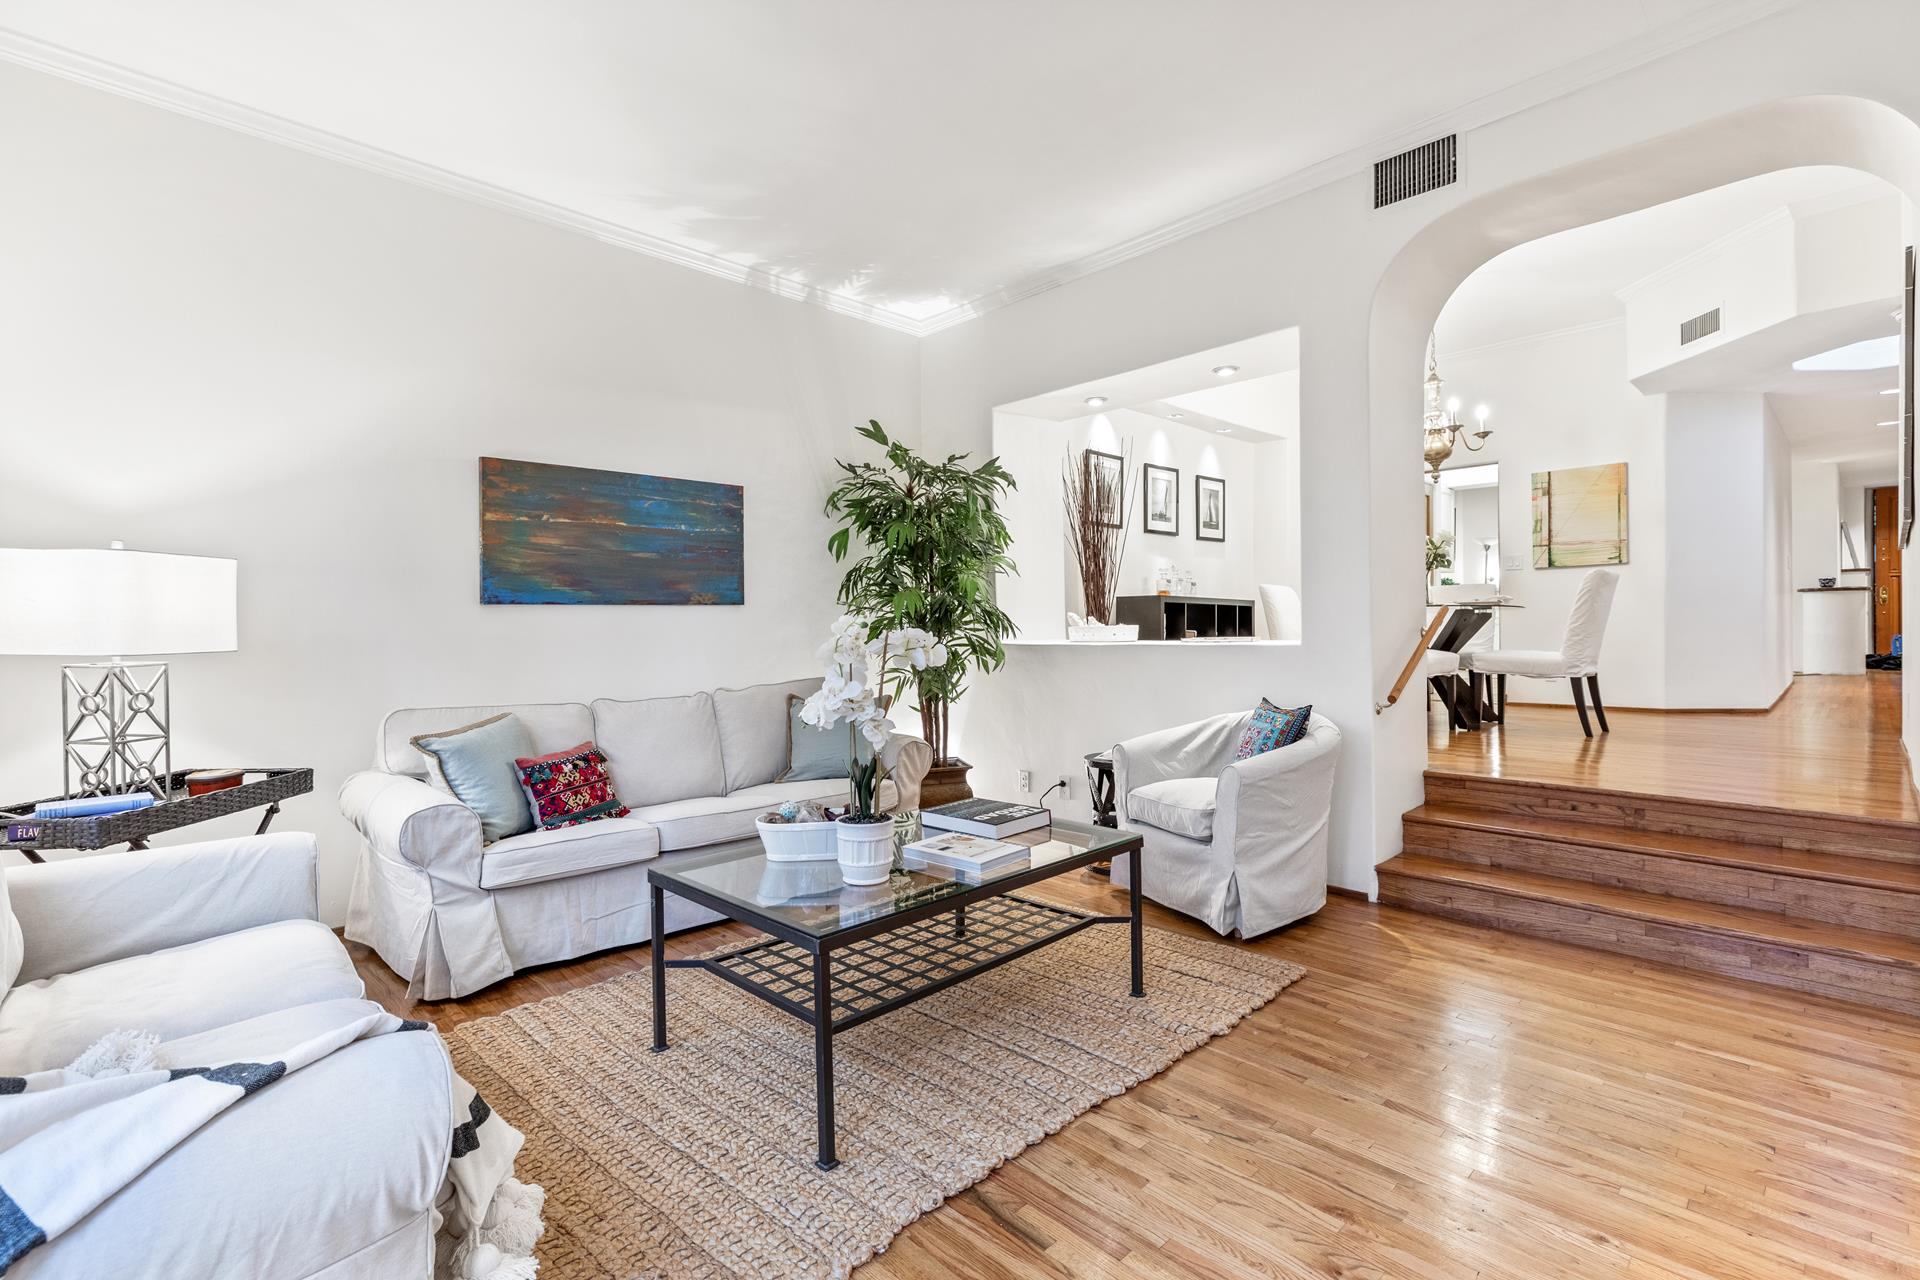 15500 W SUNSET, 103 - Pacific Palisades, California